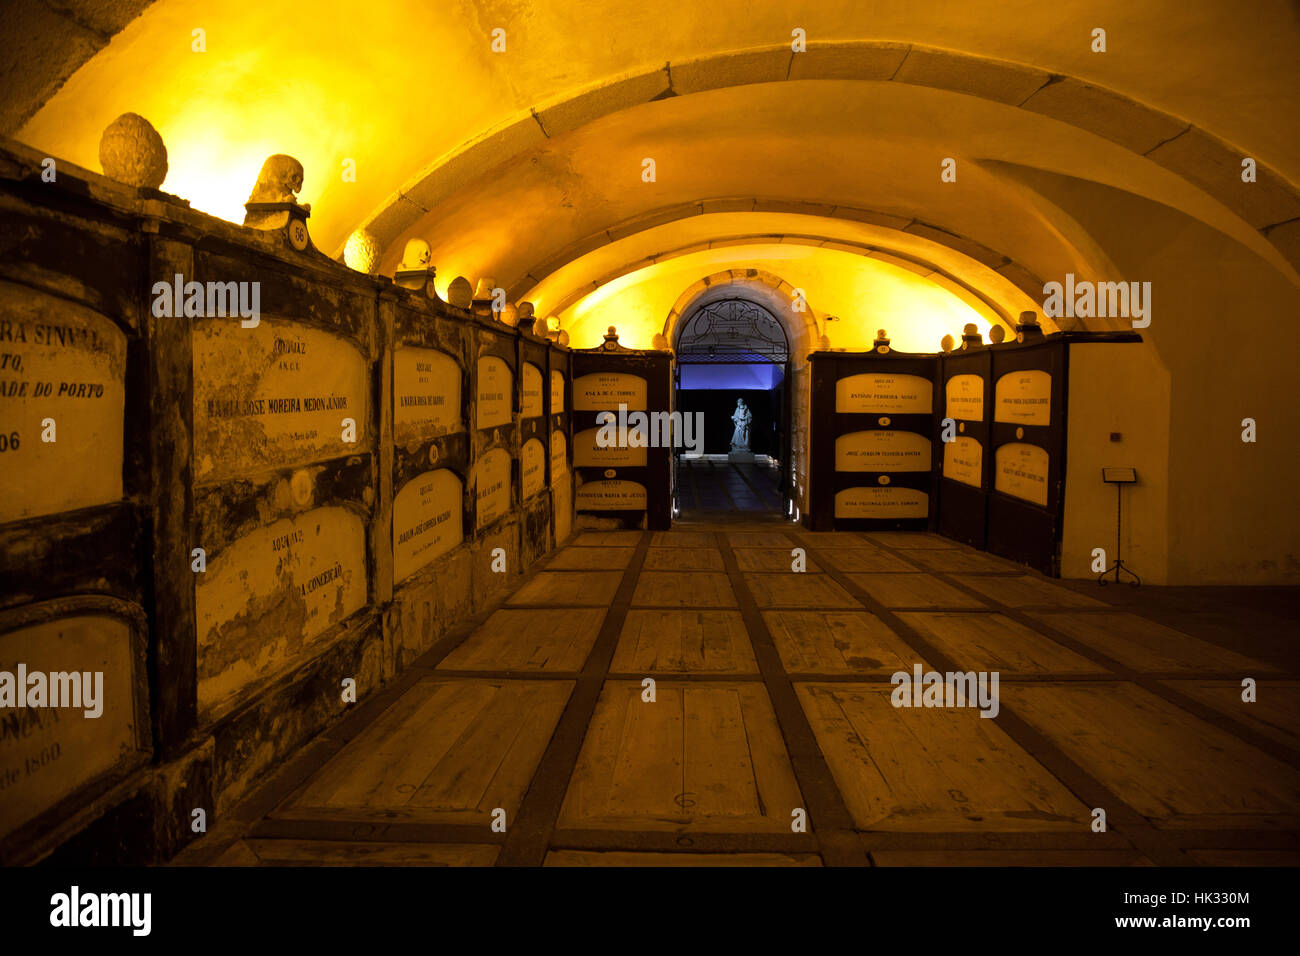 Catacombs of Sao Francisco chuech in Porto, Portugal - Stock Image